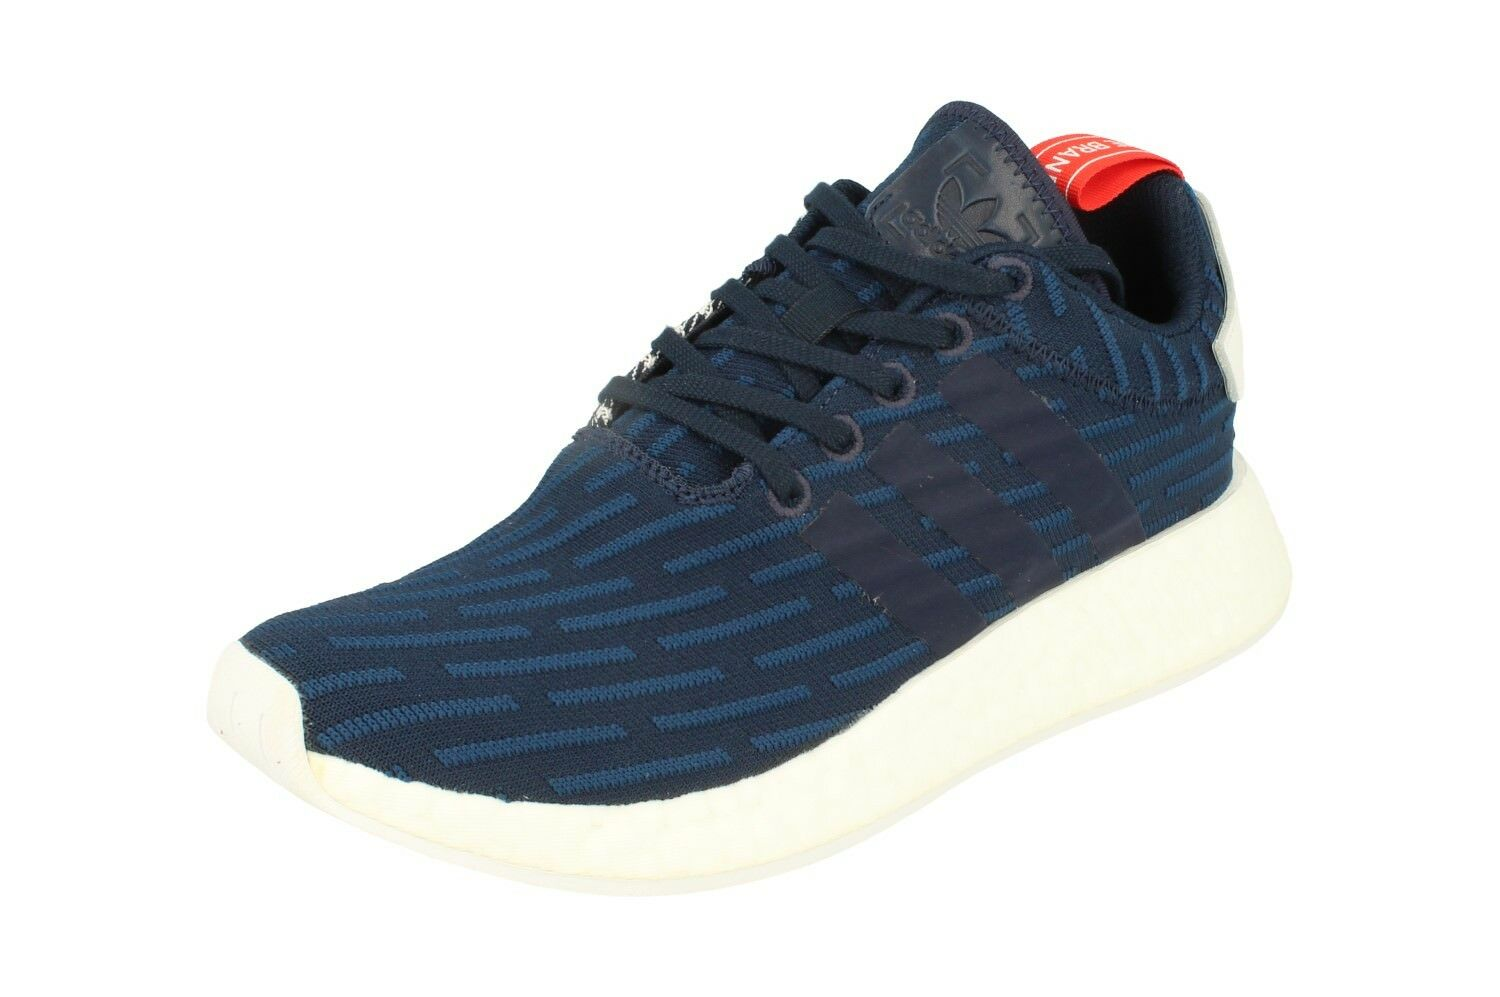 Adidas Originals Nmd_R2 Pk Mens Running Trainers Sneakers BB2952